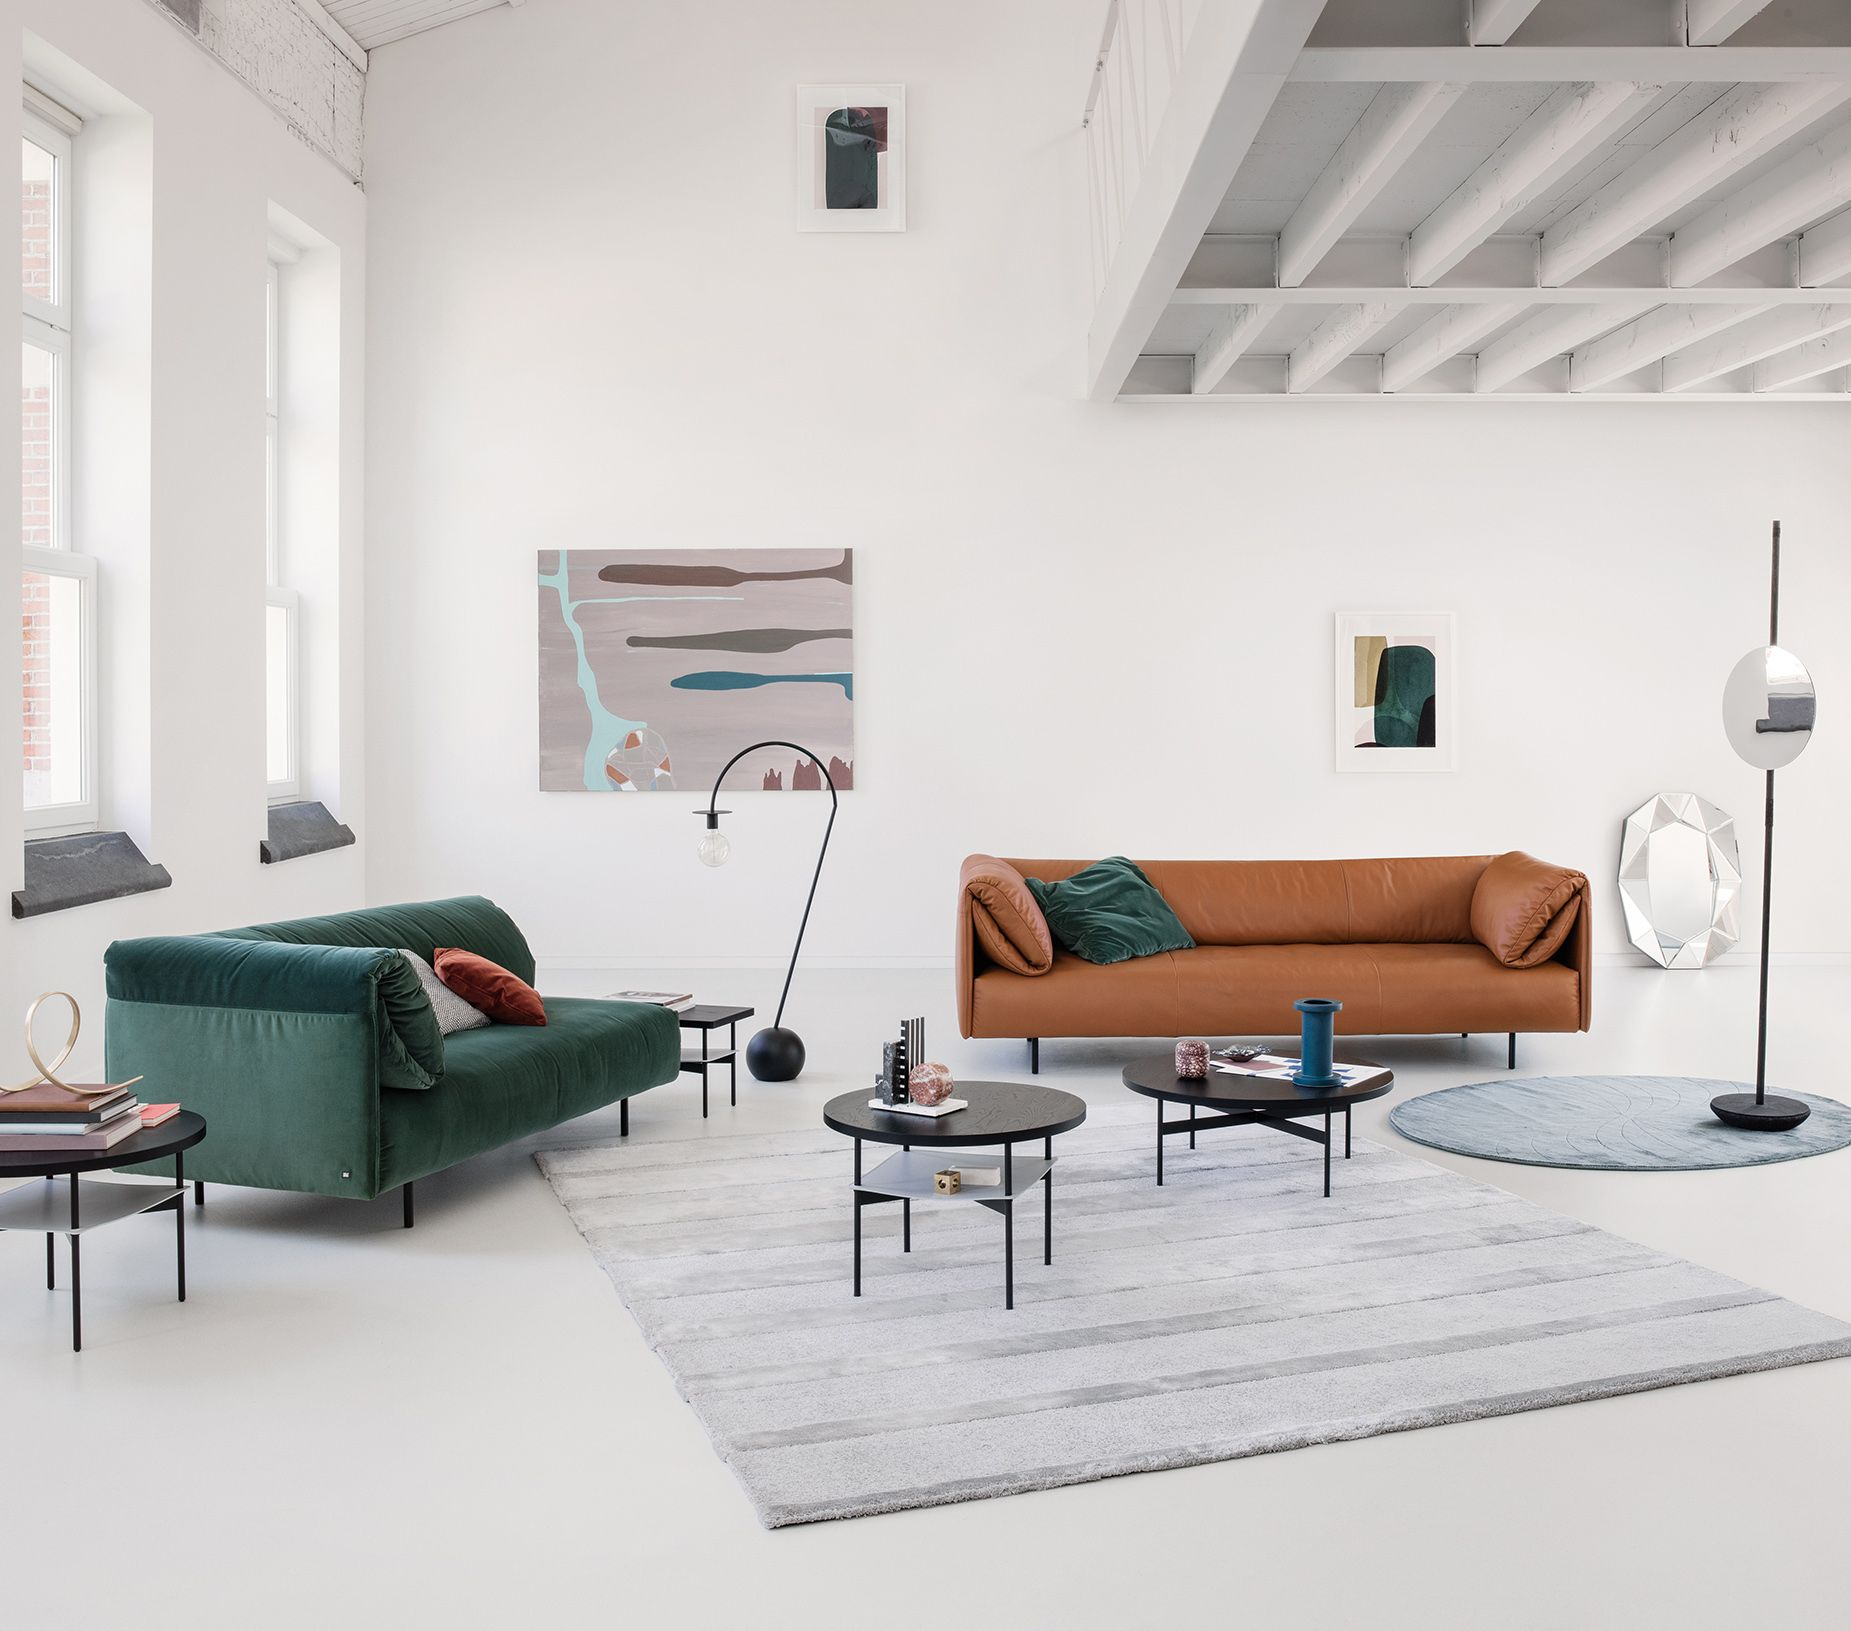 rolf benz modern furniture. A Colorful Sofa Can Add Contrast To Modern Home. Tthe New Rolf Benz Alma Furniture